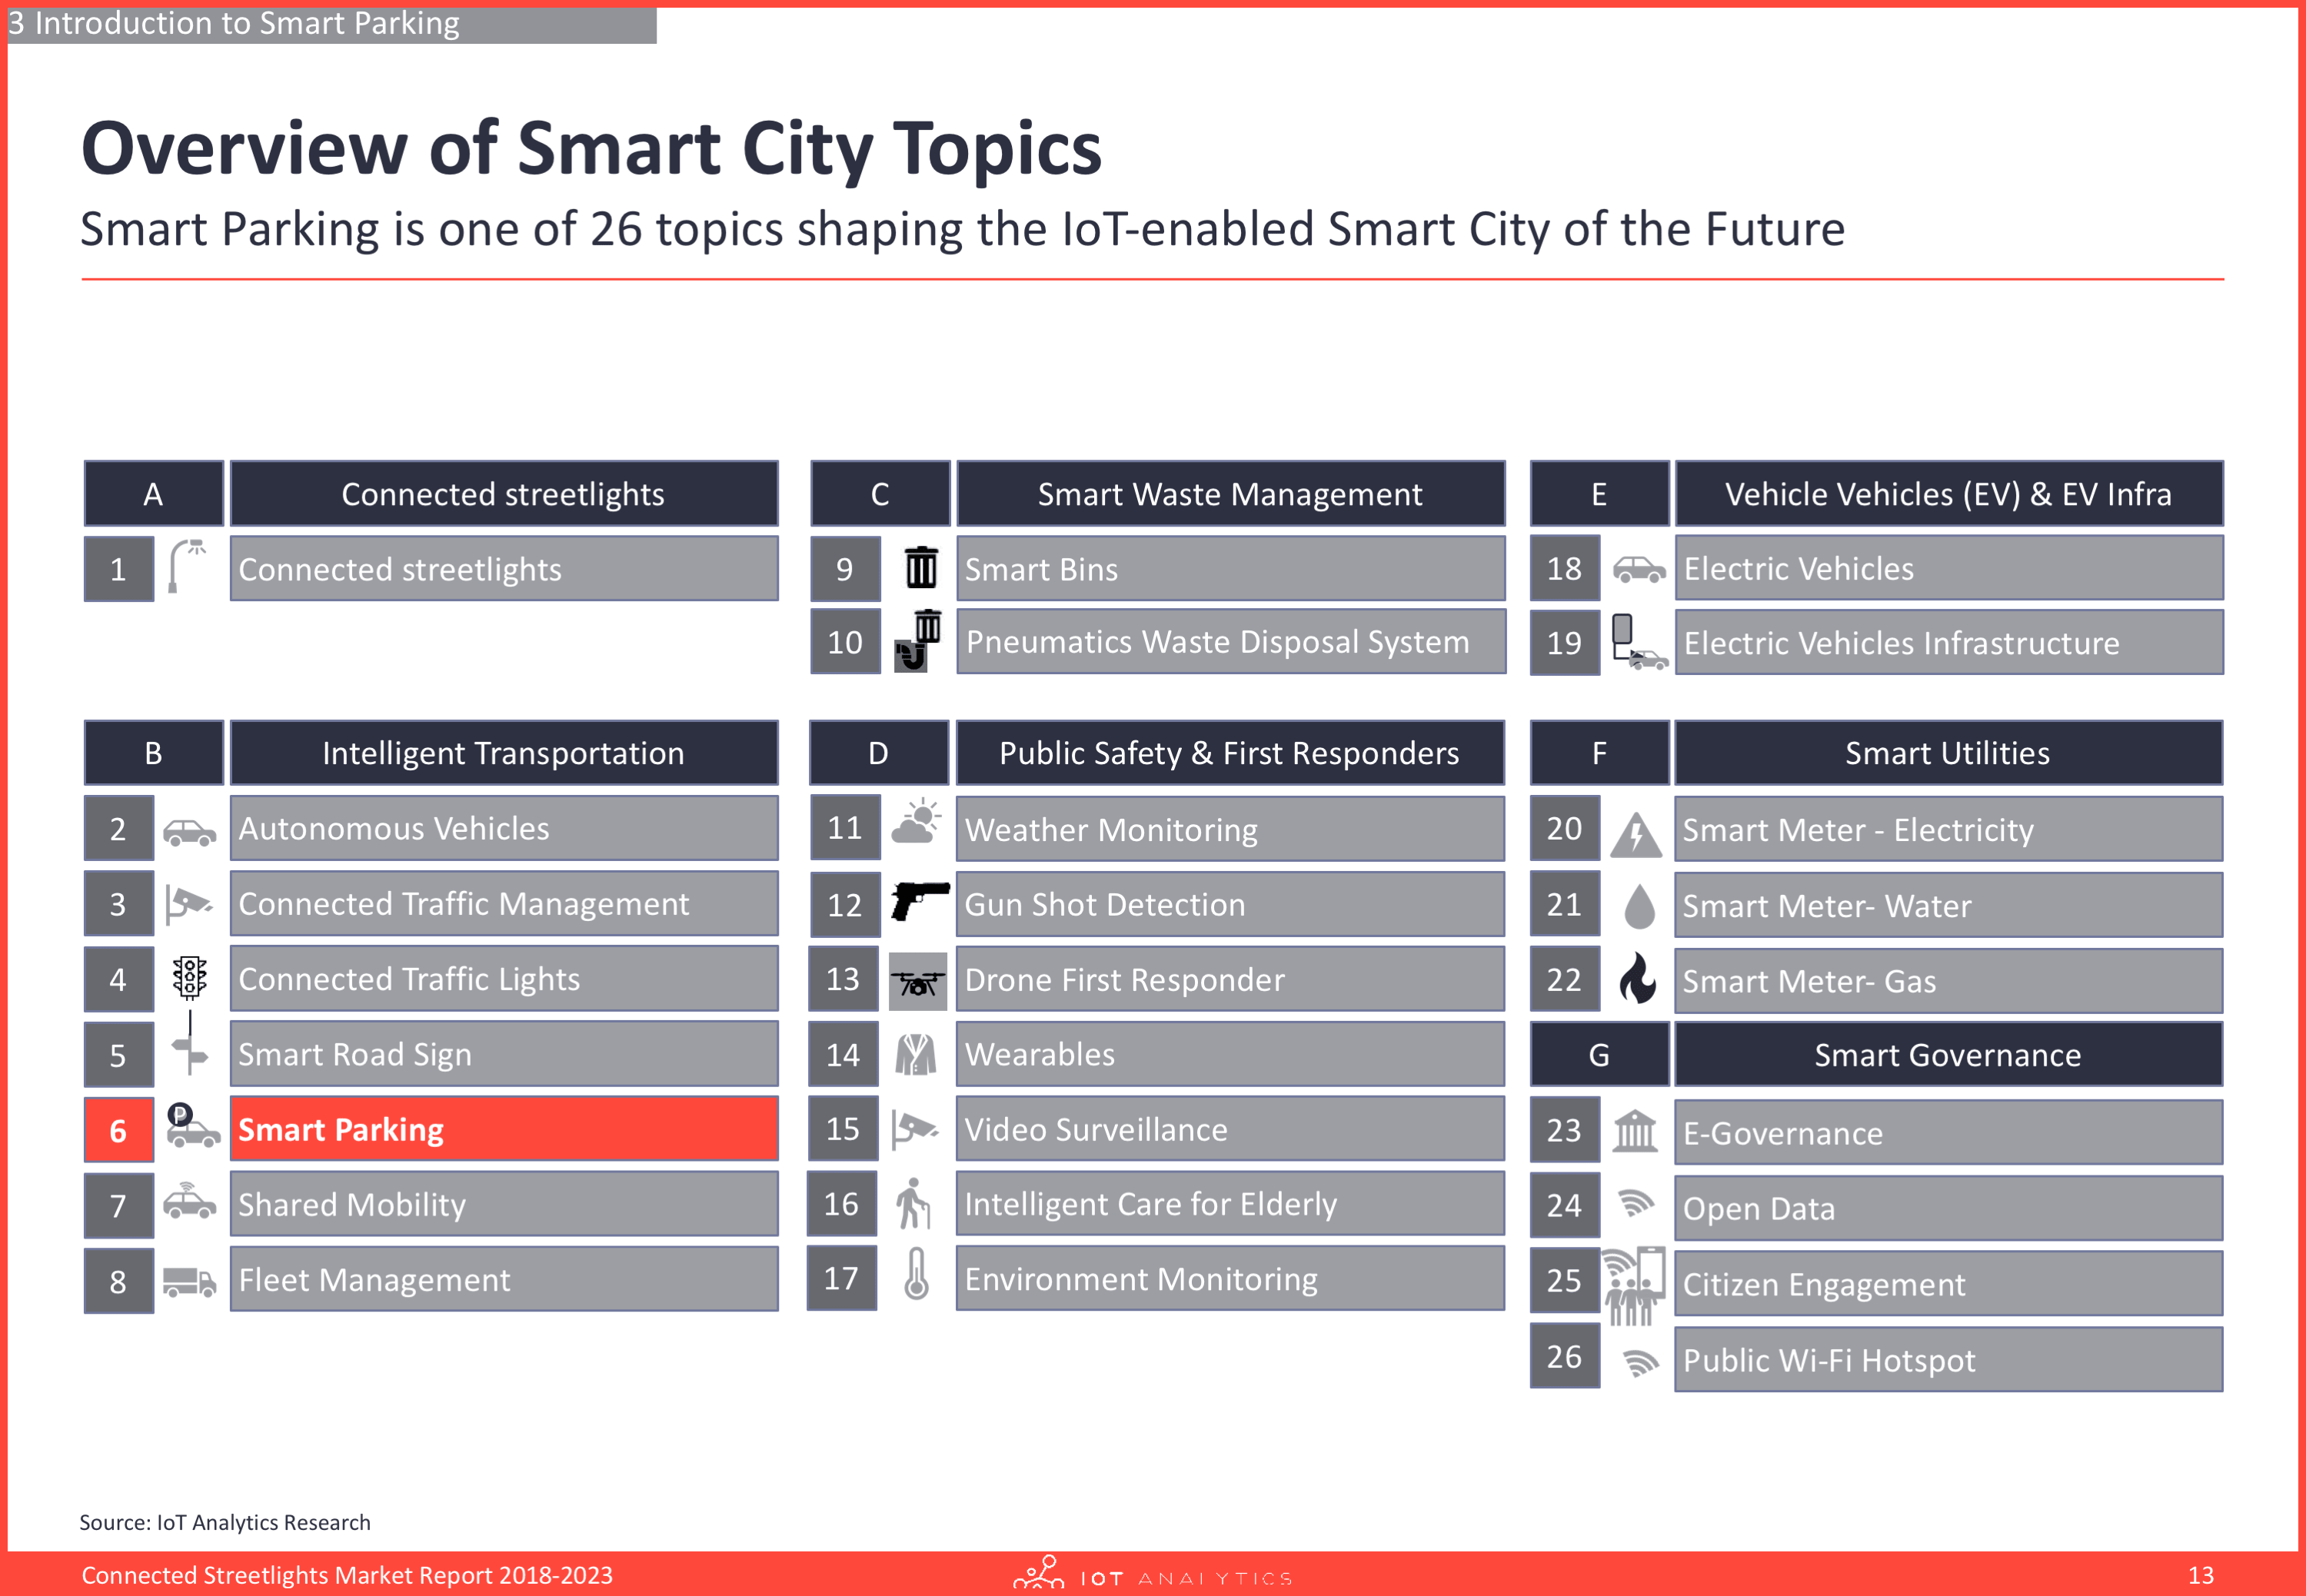 Overview of smart city topics